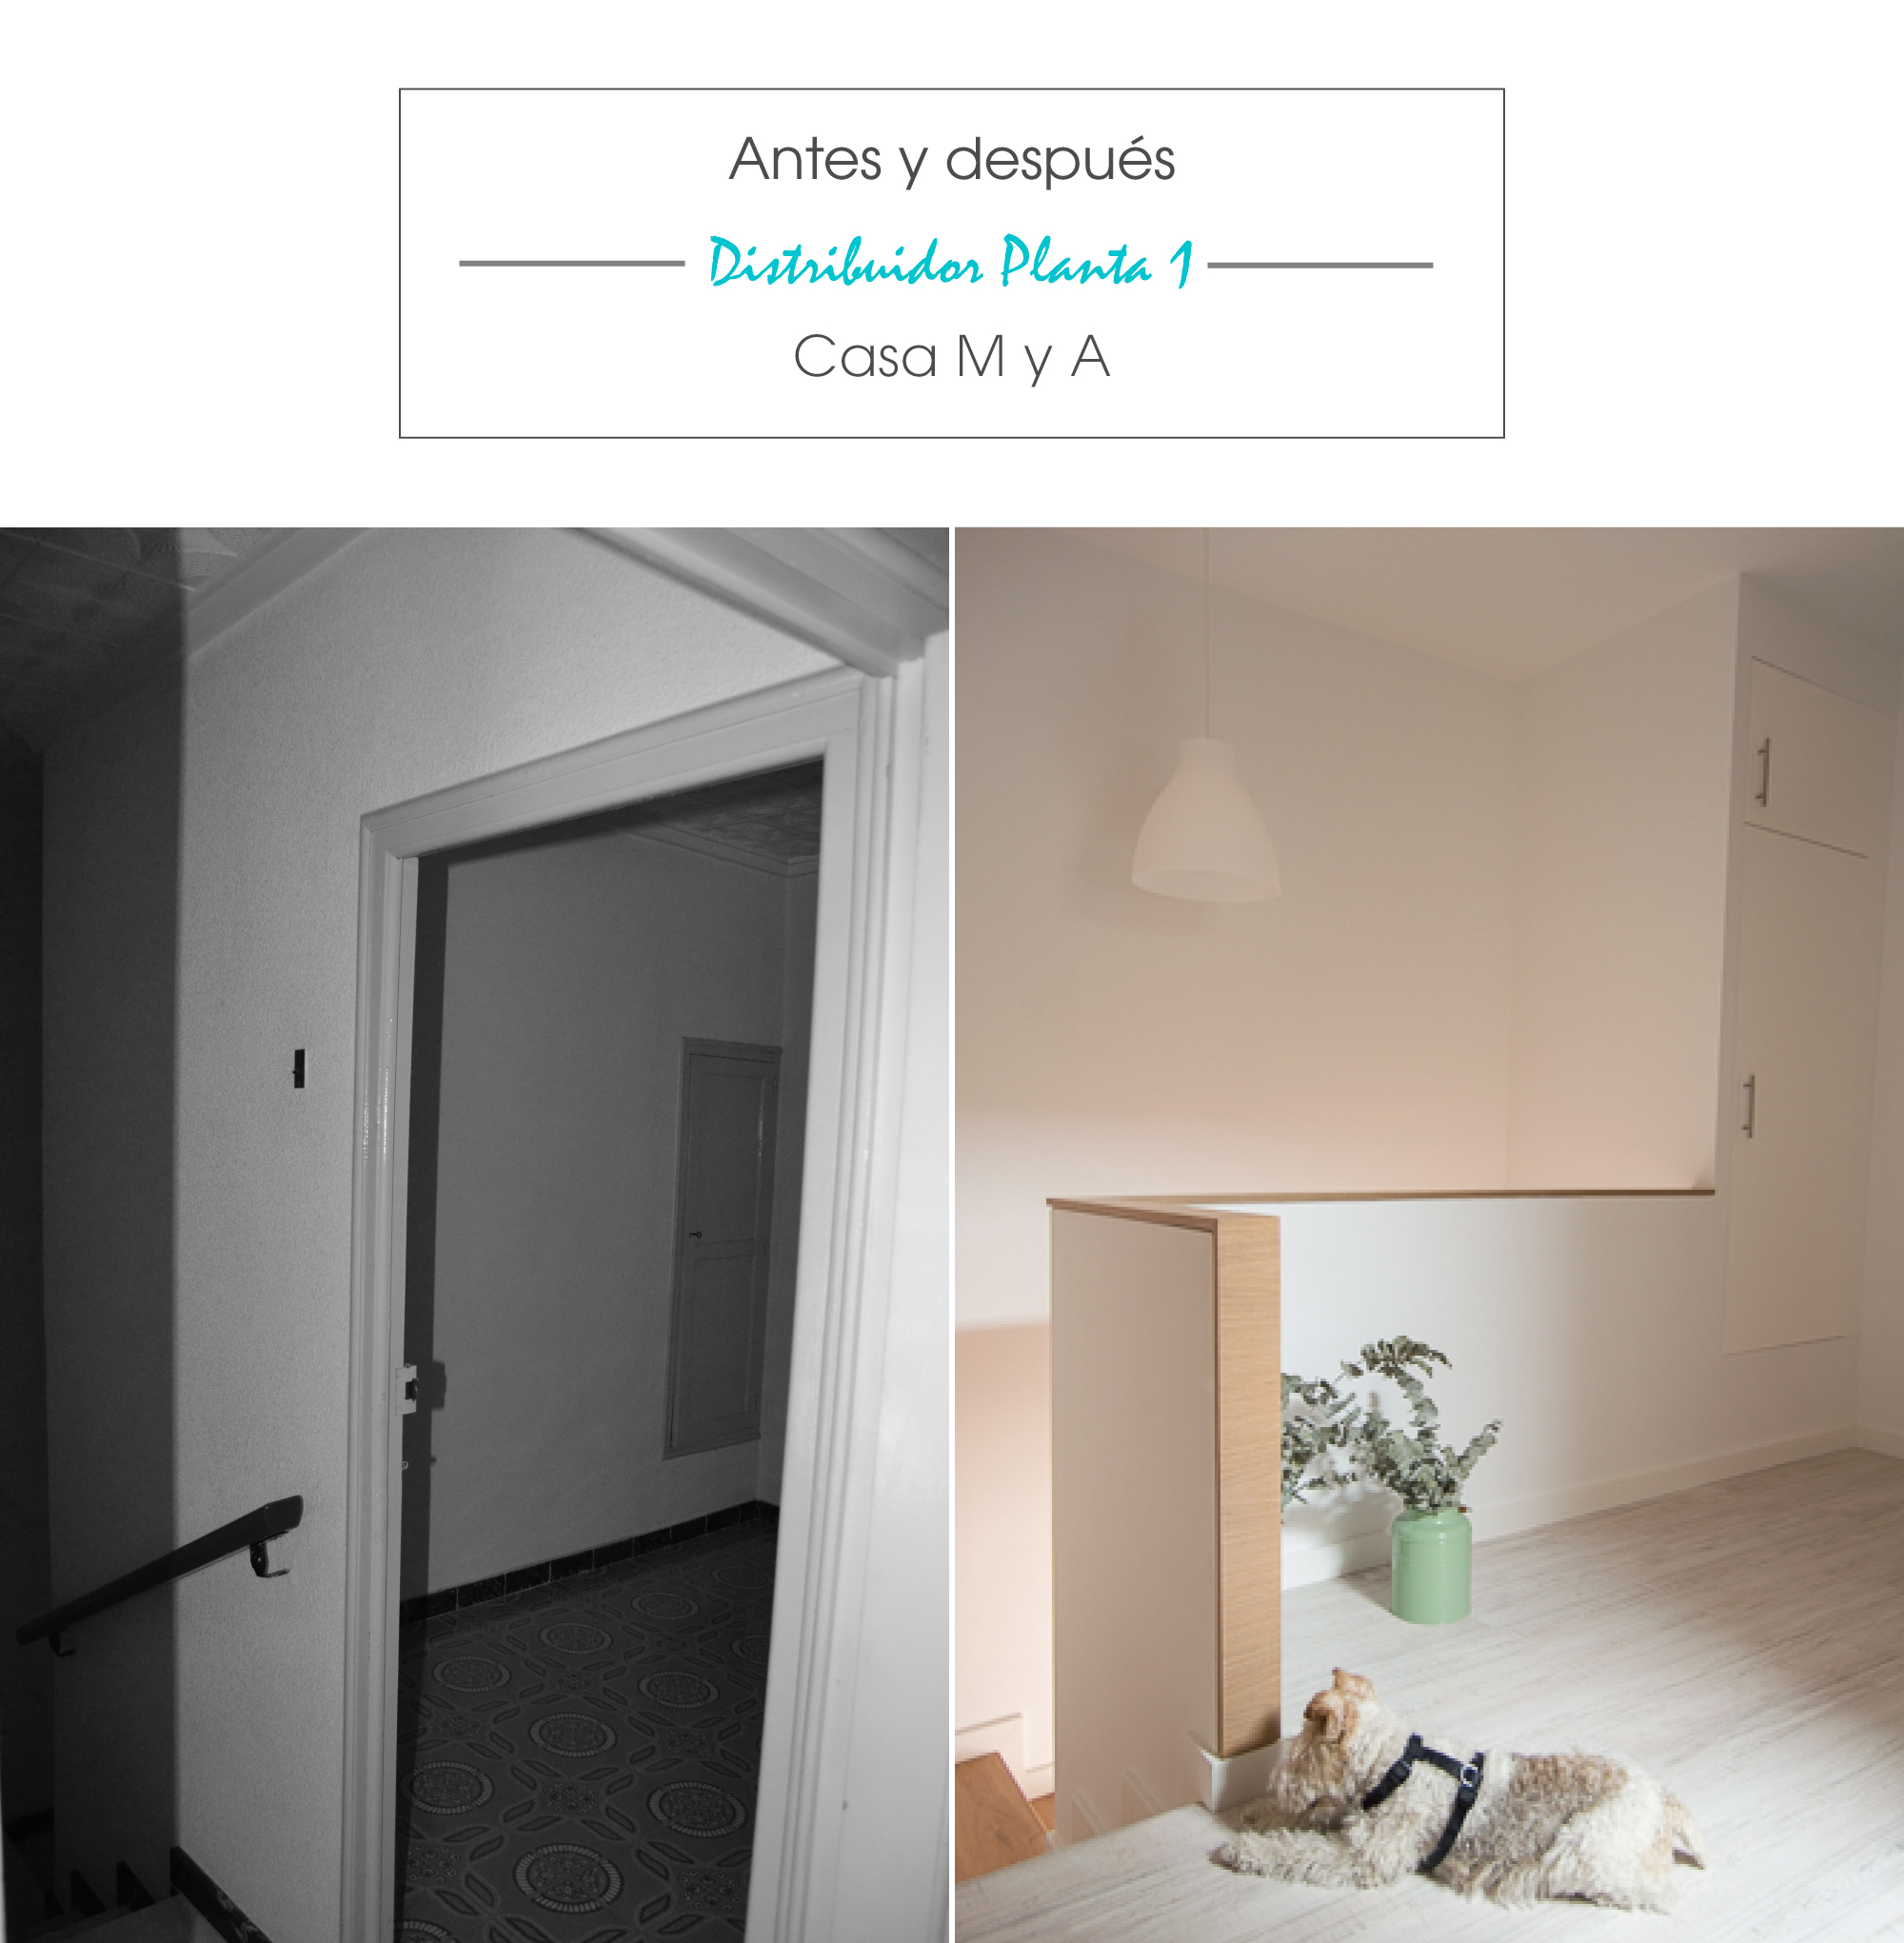 antes y despues_distribuidor_casamya_blog_ana_pla_interiorismo_decoracion_1